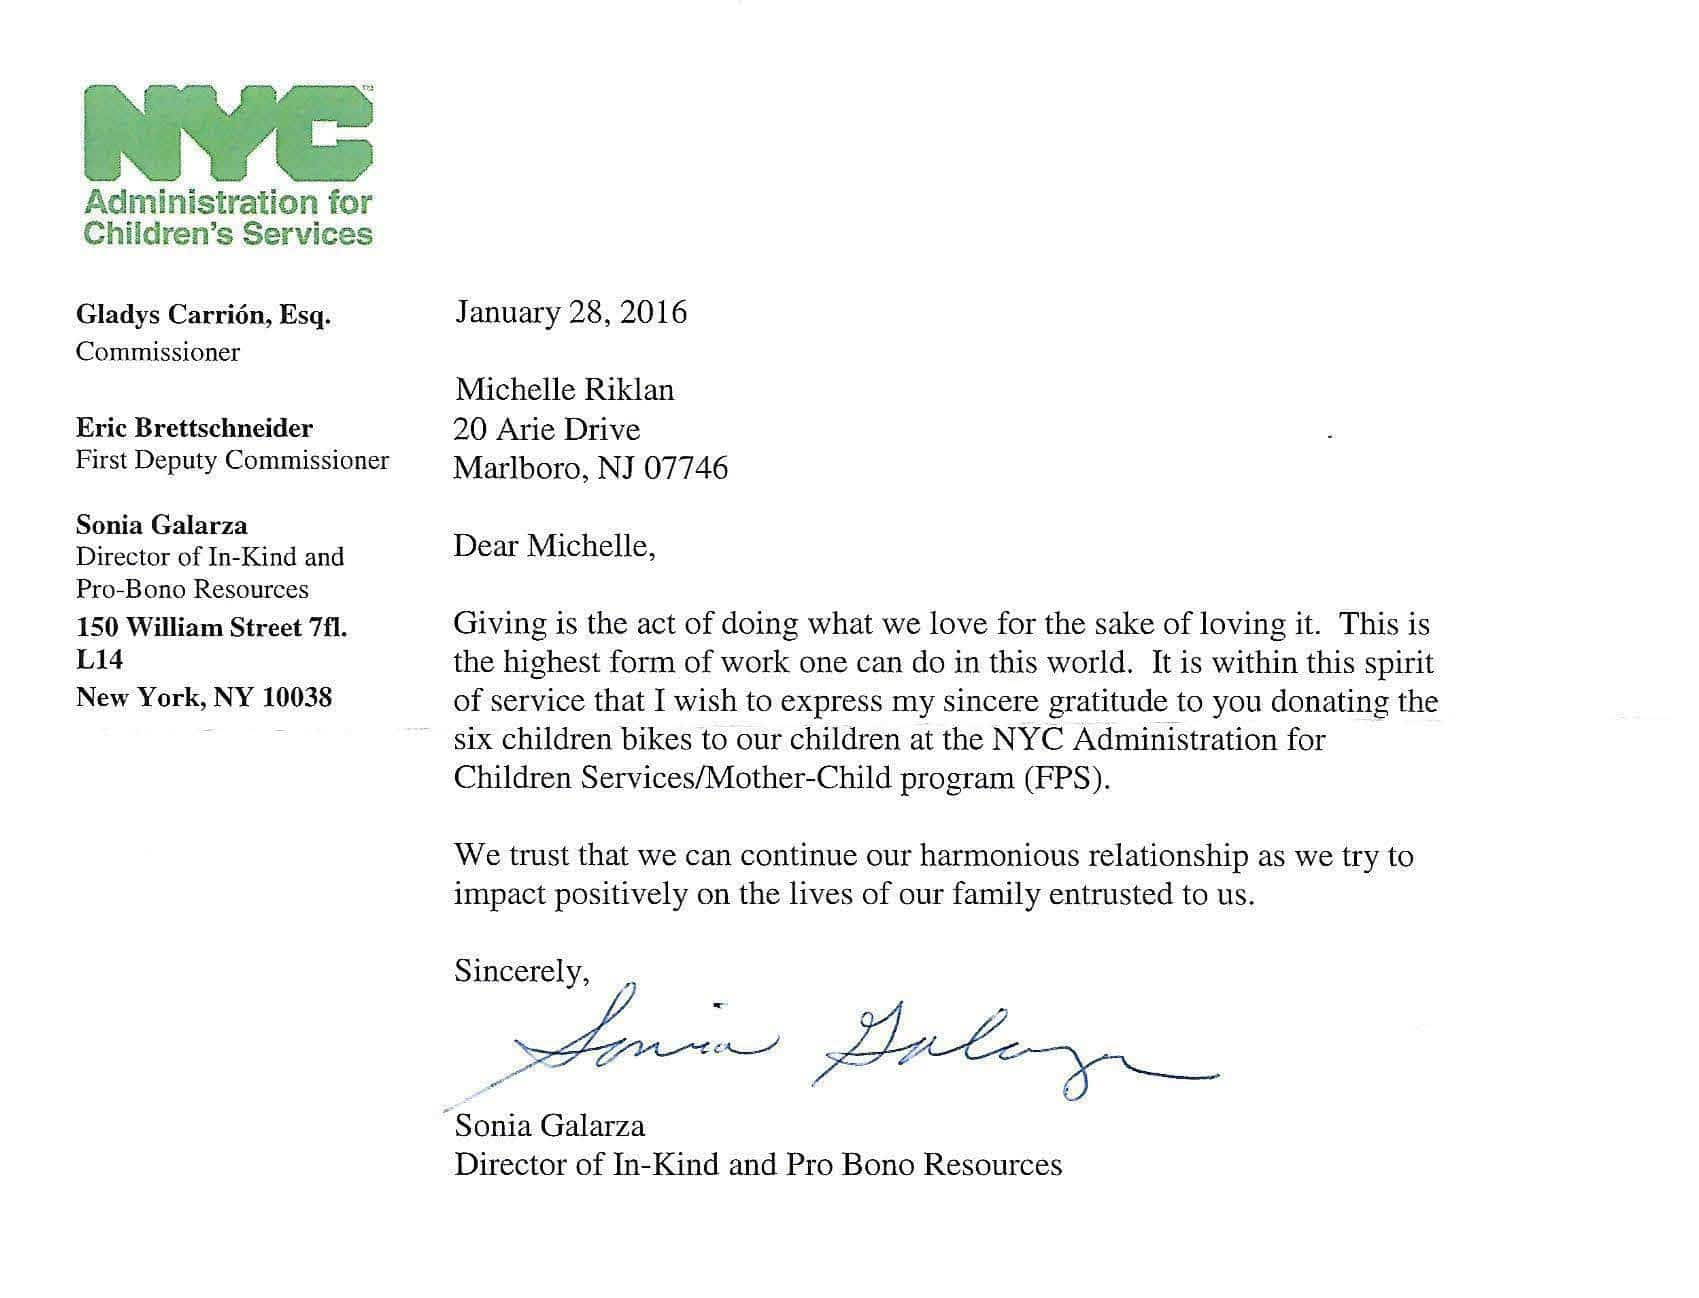 a kind note from a new york city charity kind note from a new york city charity